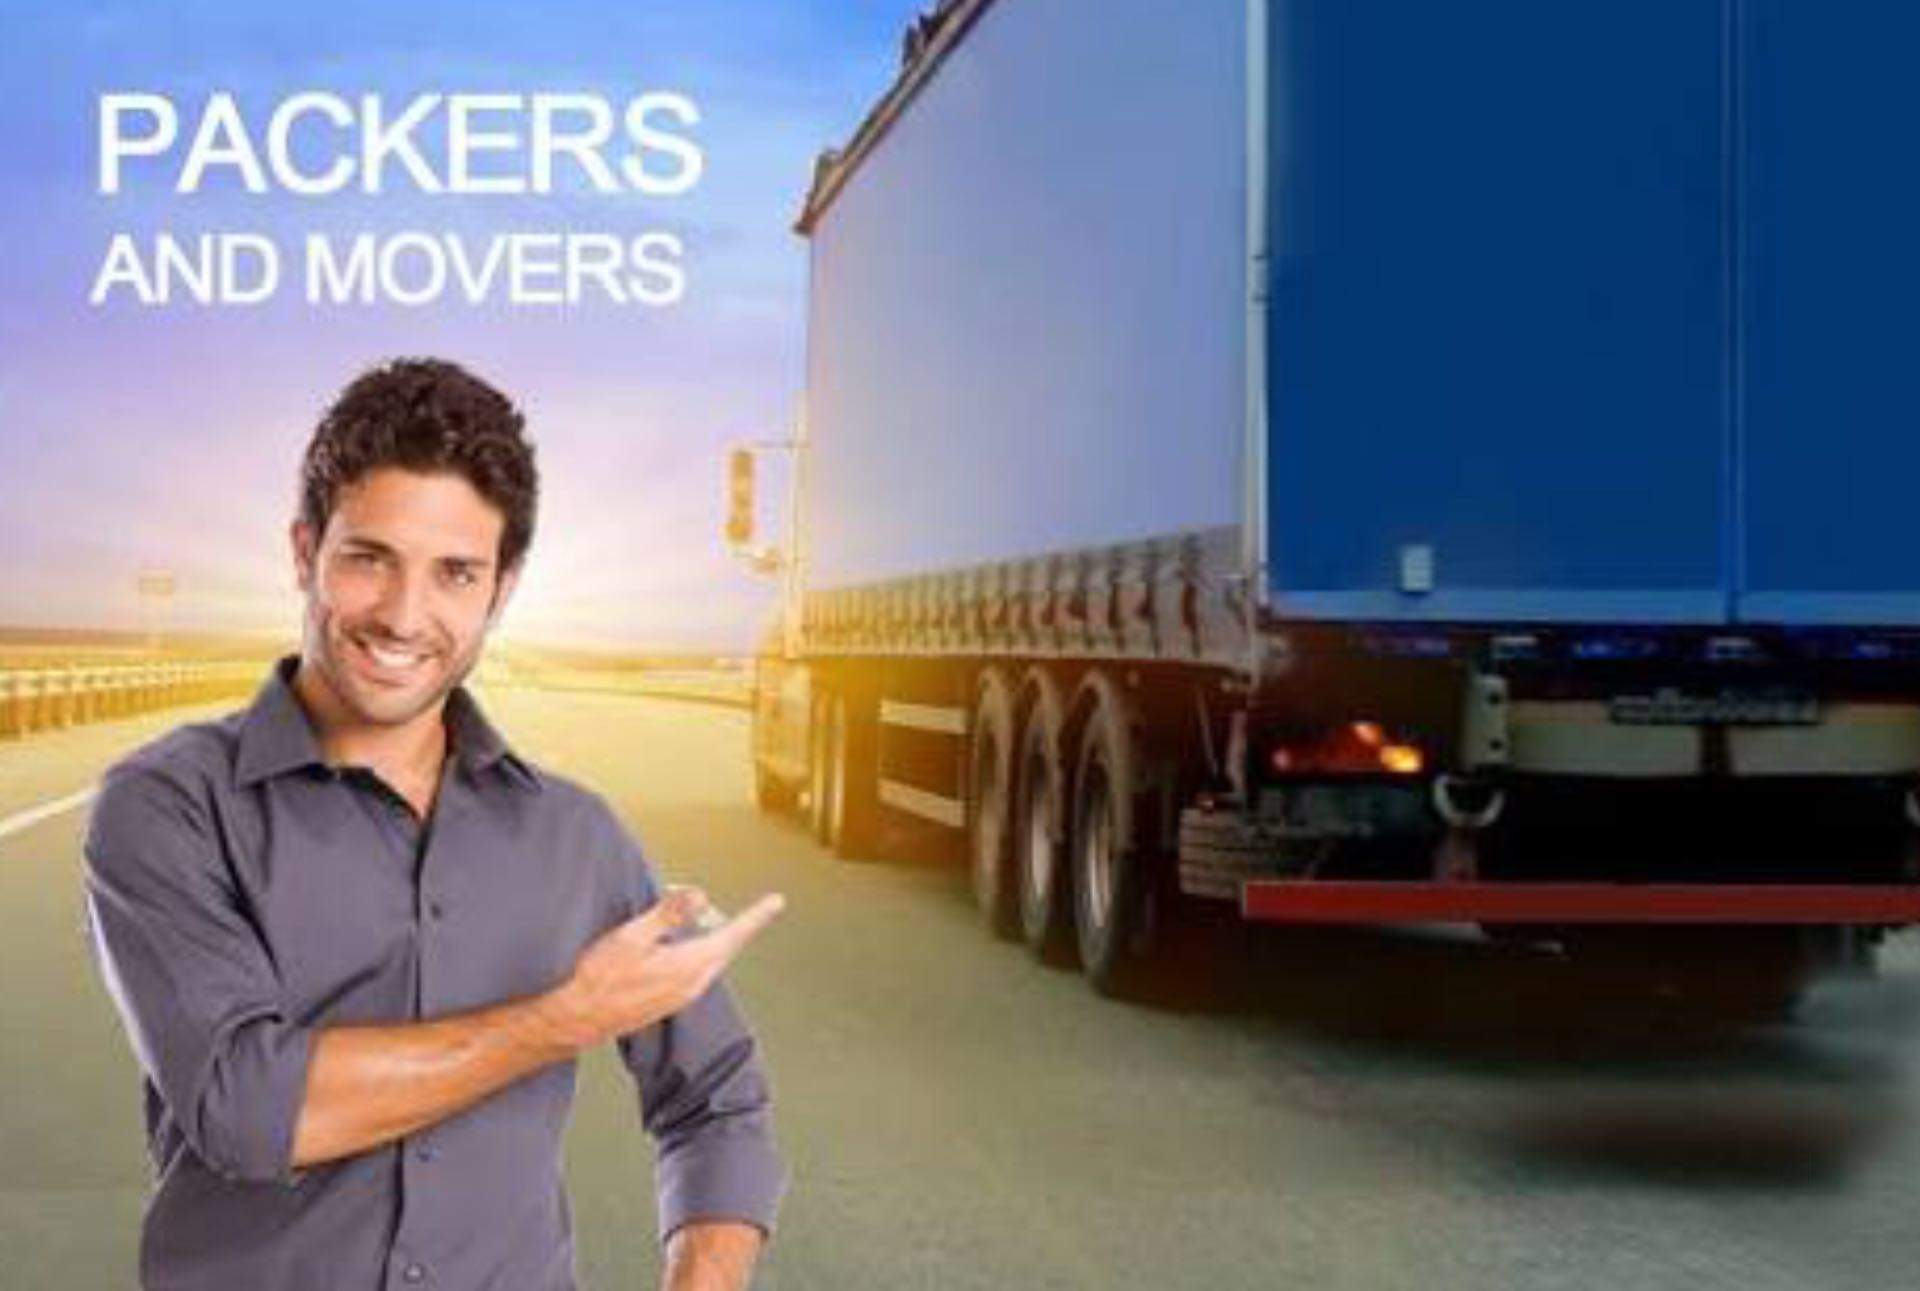 packers and movers 1.jpg